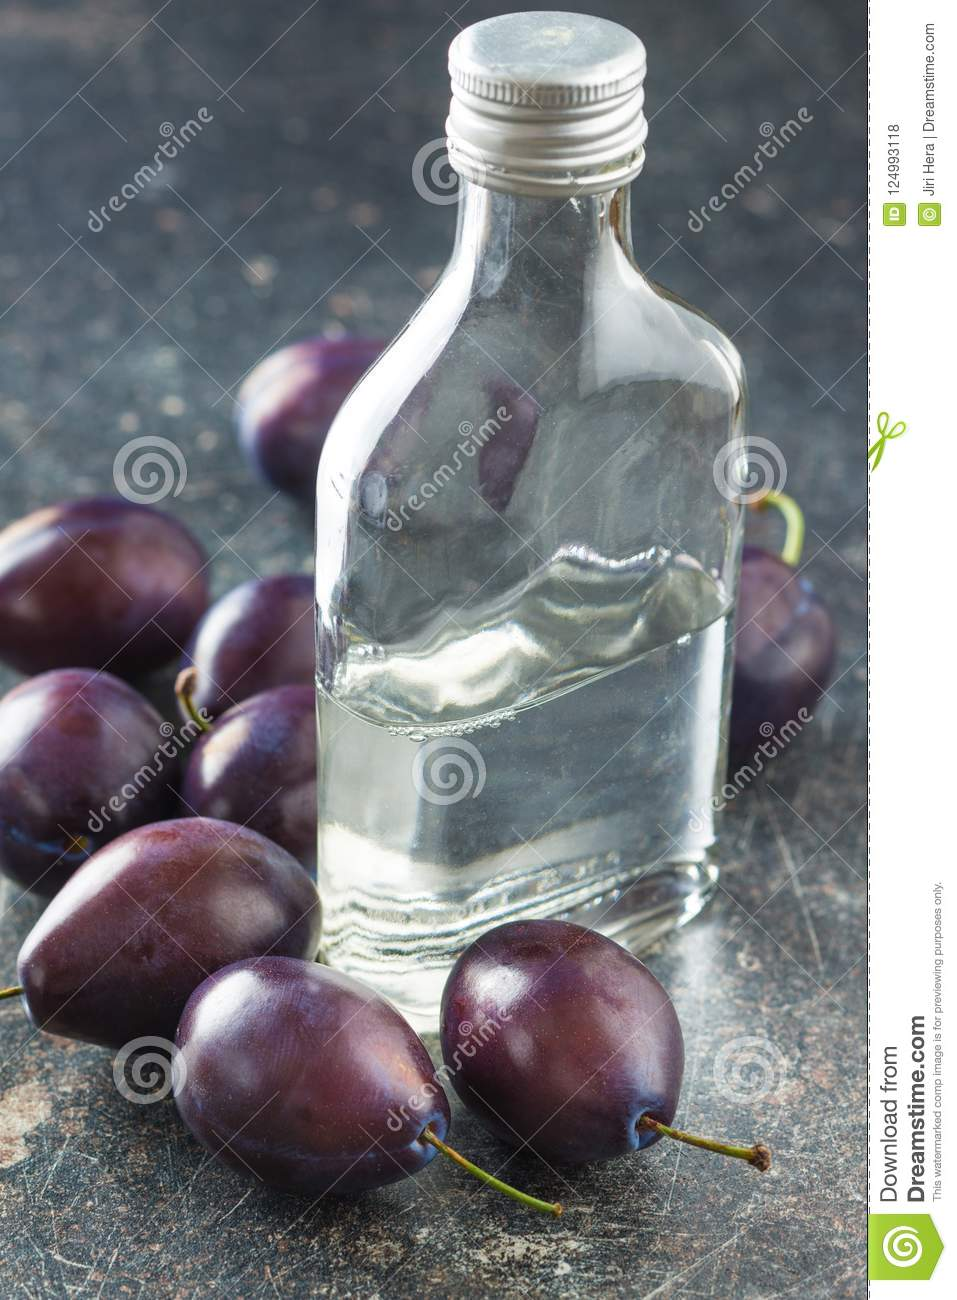 Plum brandy and plums.